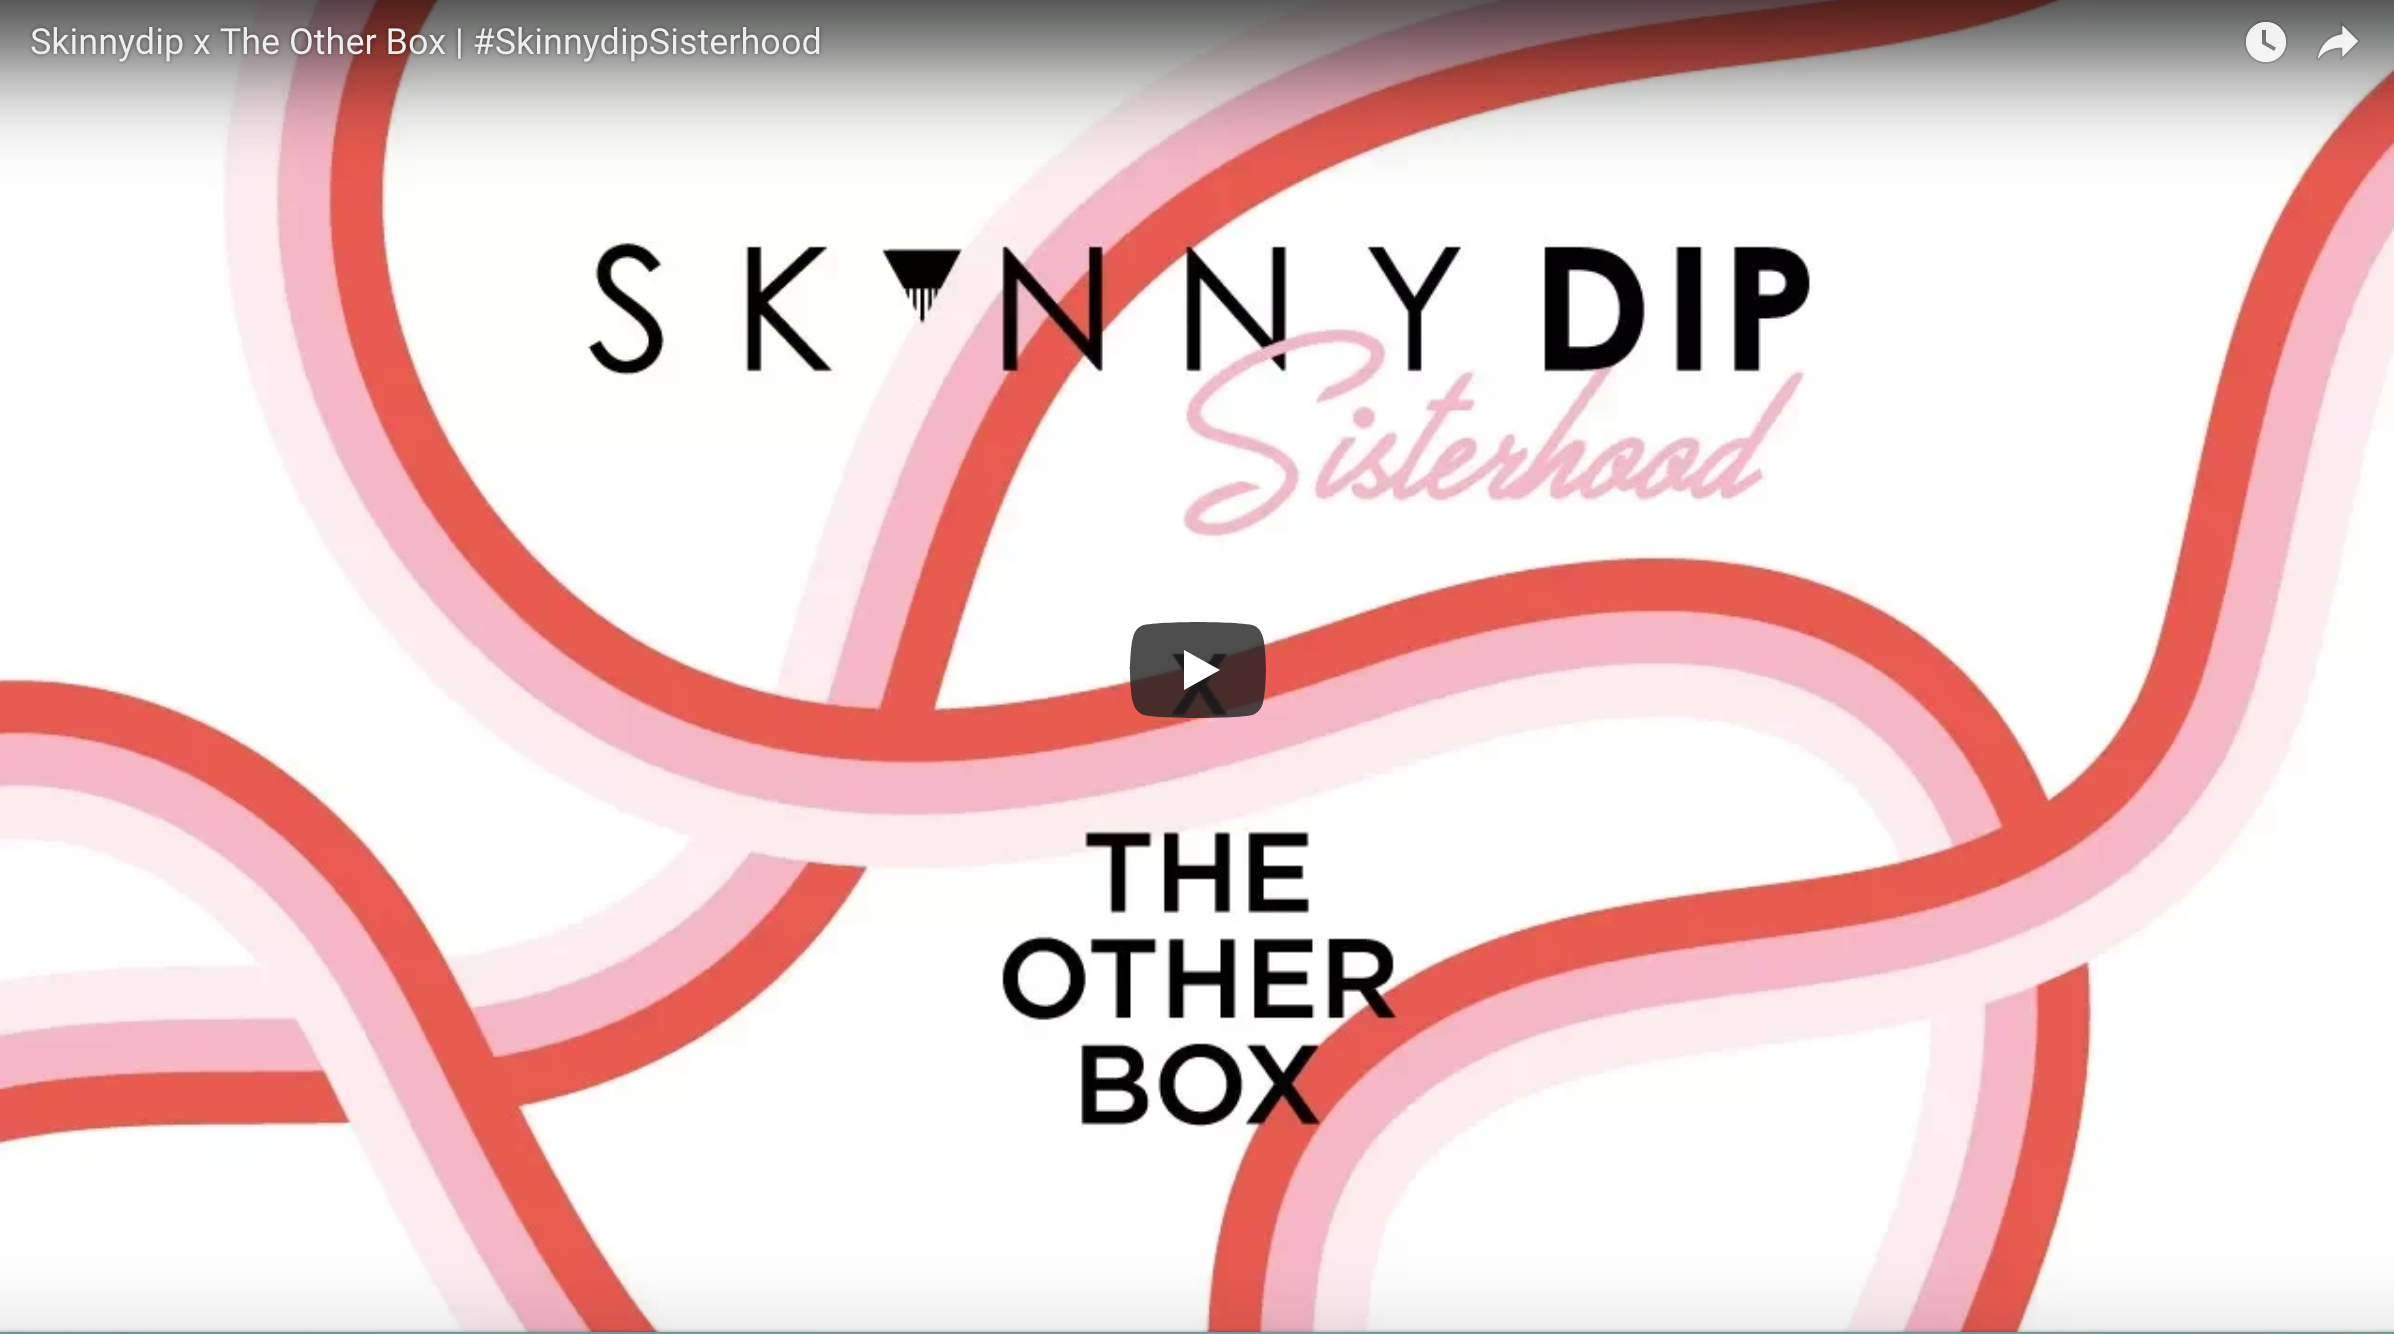 SKINNYDIP LONDON  PARTNERSHIP  For International Women's Day 2018, The Other Box joined up with Skinnydip London to celebrate womanhood, diversity and creativity and showcased 12 emerging artists of colour people need to know about!